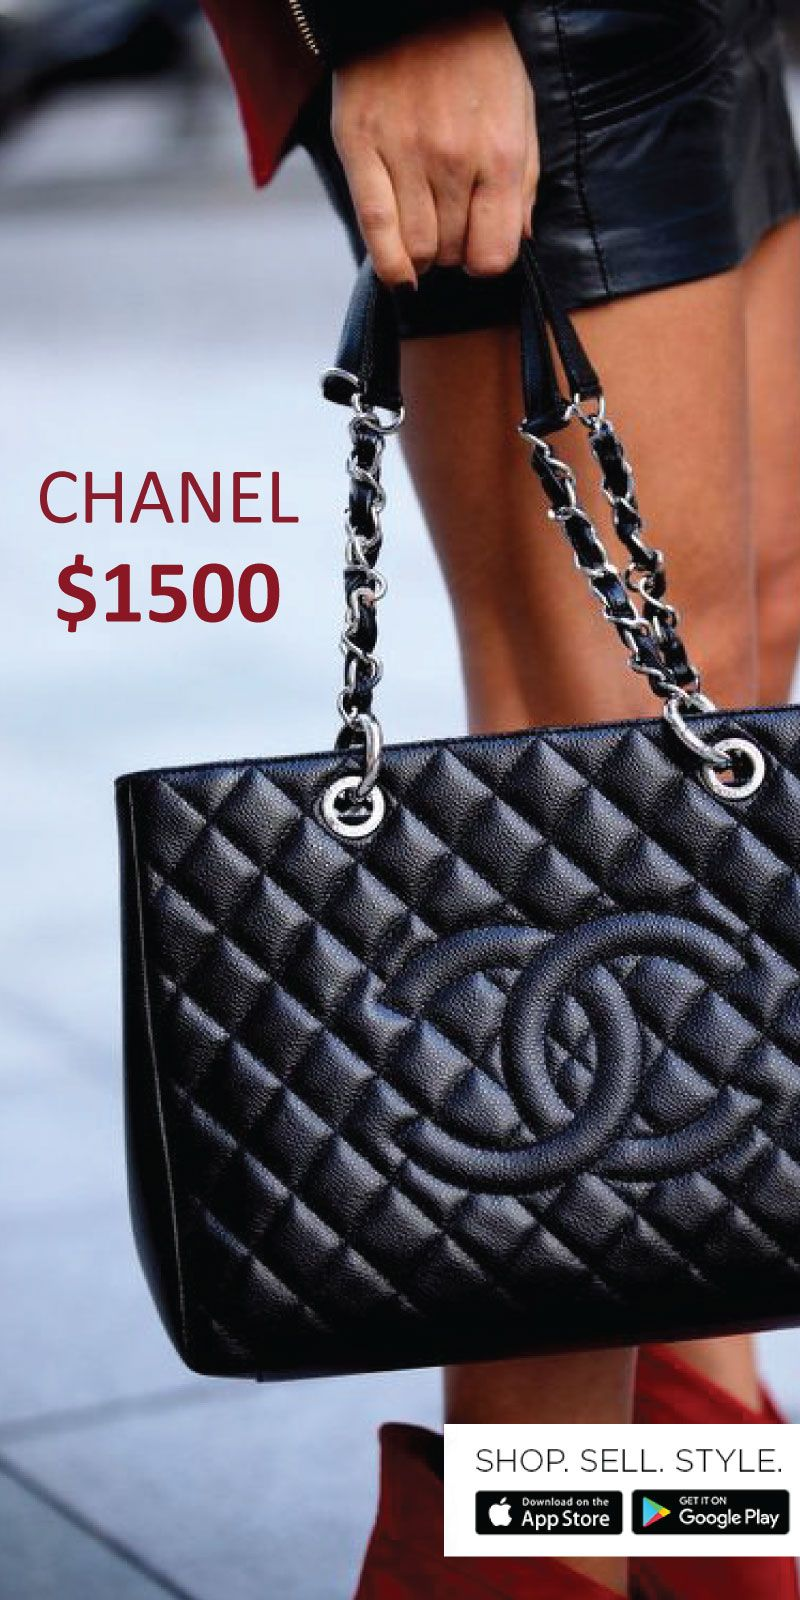 9c17e6f385d3 Find Authentic Chanel